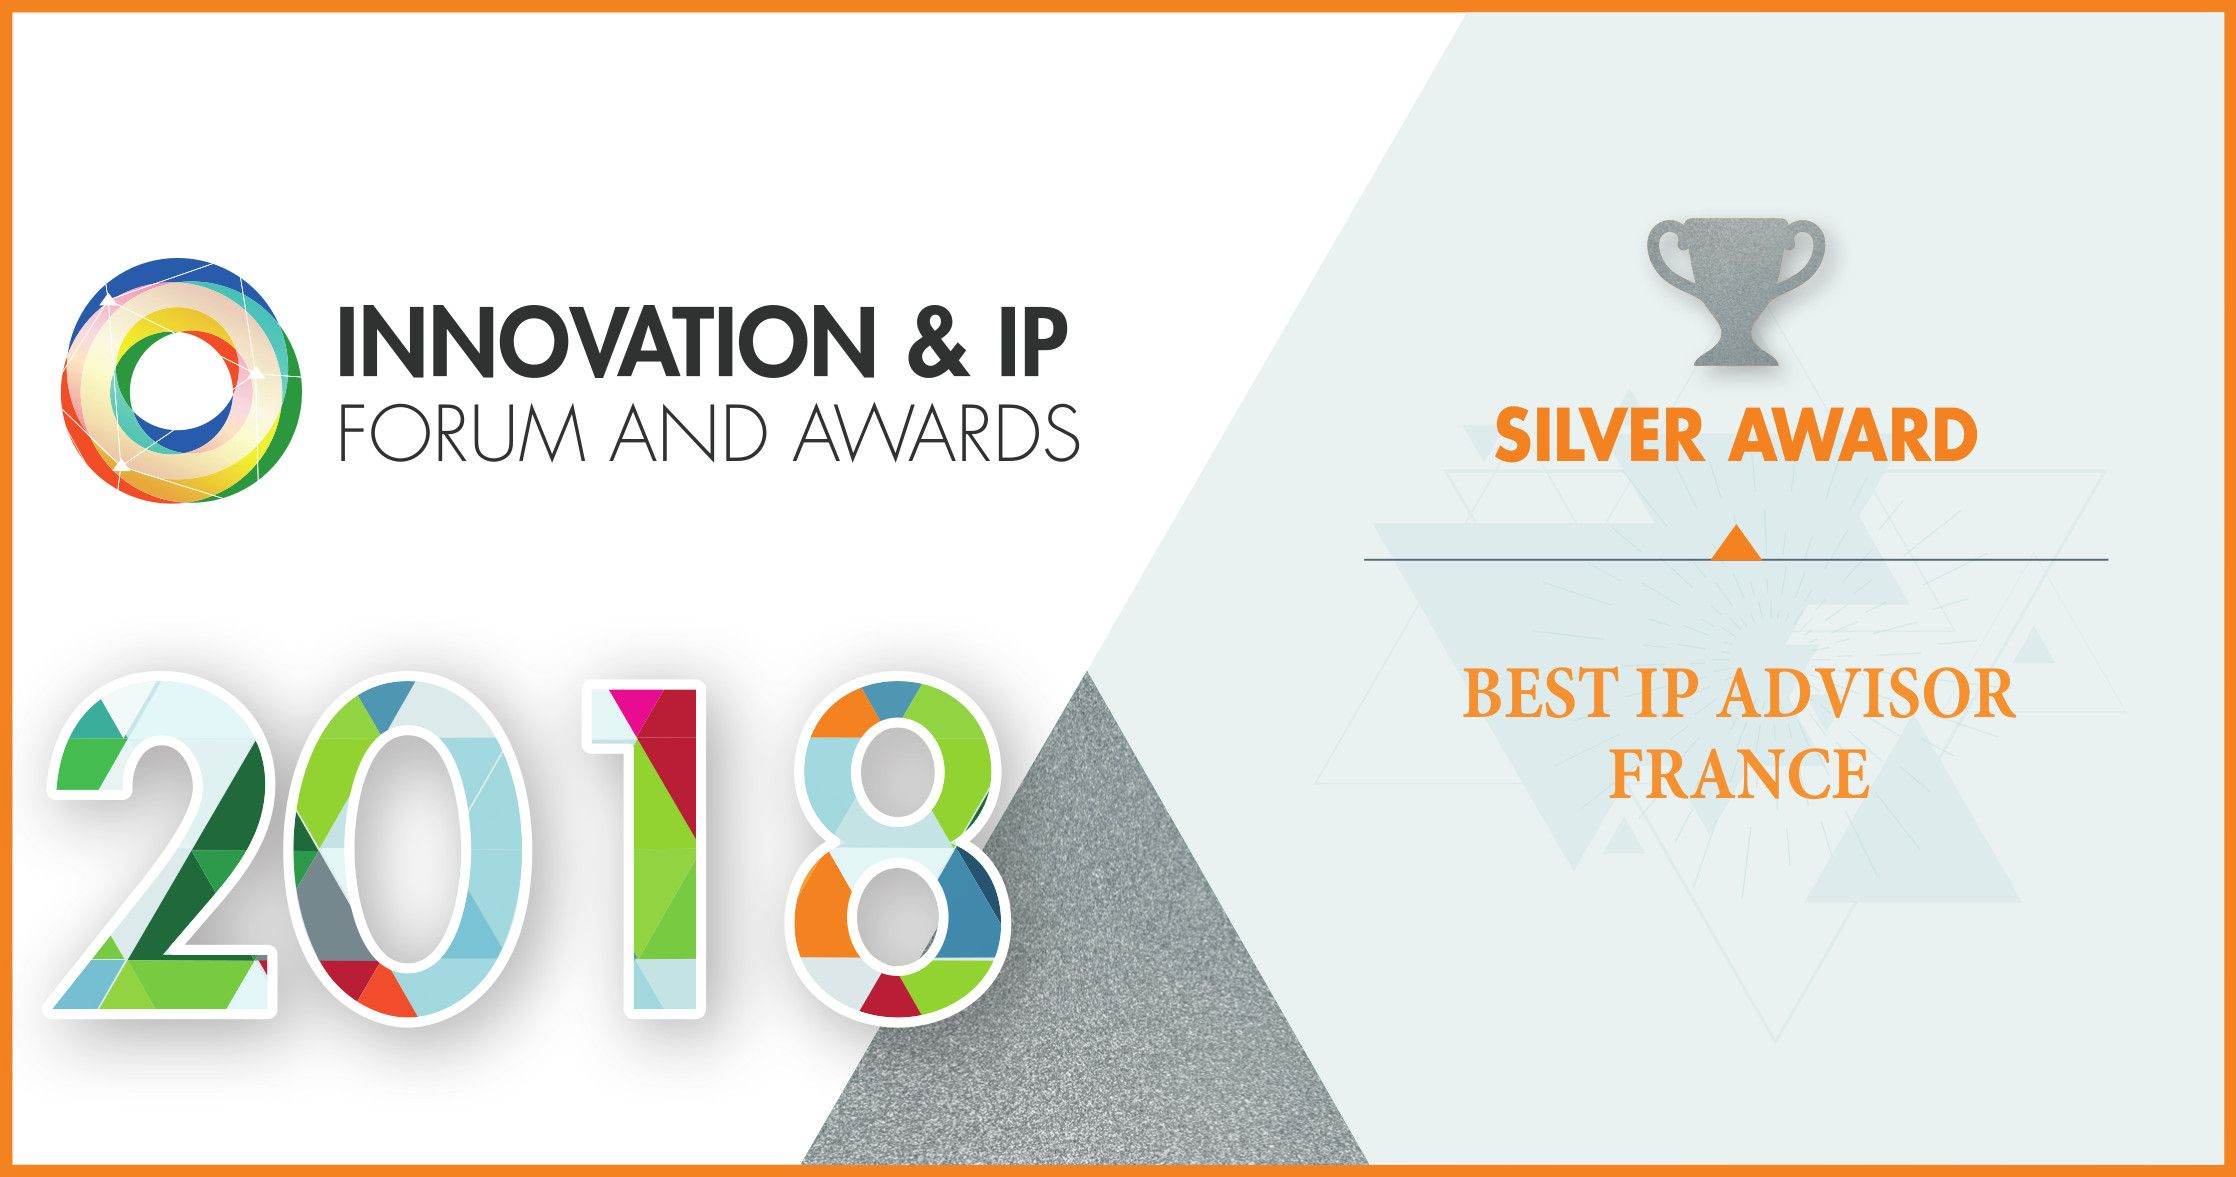 IPSIDE : Silver Award Best IP advisor France - 2018